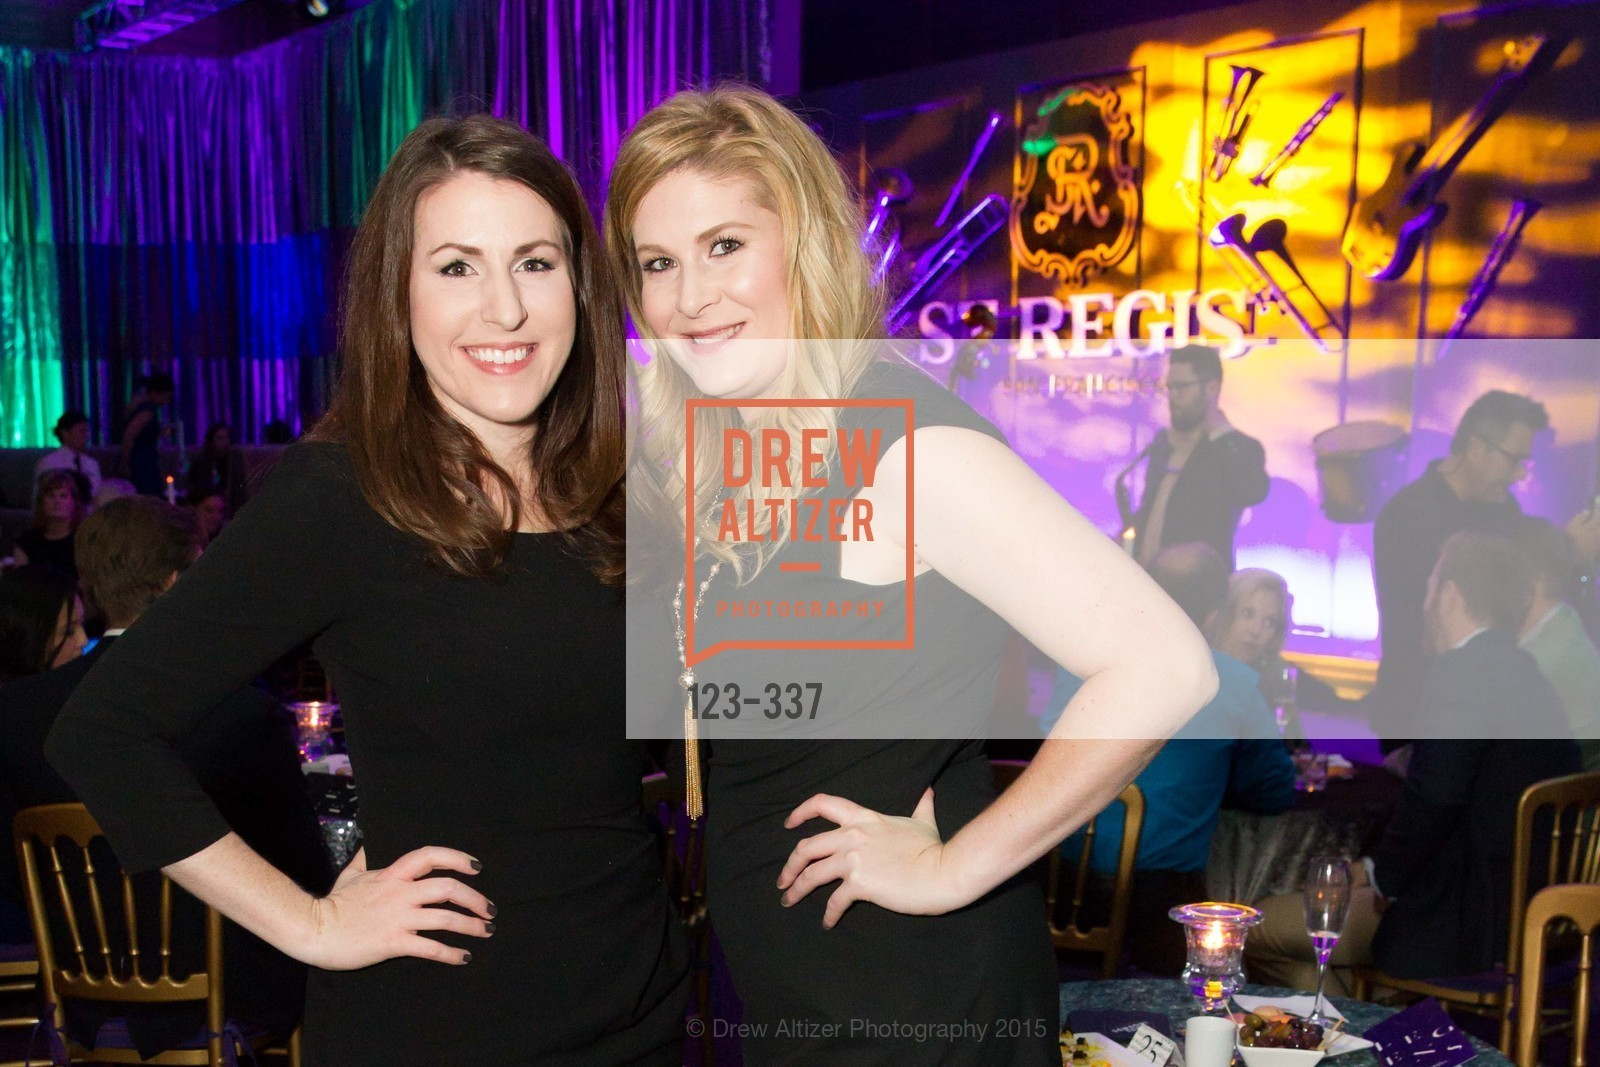 Victoria Newton, Katie Murphy, Jazz Legends At St. Regis Presents Jamie Cullum, St. Regis, October 3rd, 2015,Drew Altizer, Drew Altizer Photography, full-service agency, private events, San Francisco photographer, photographer california